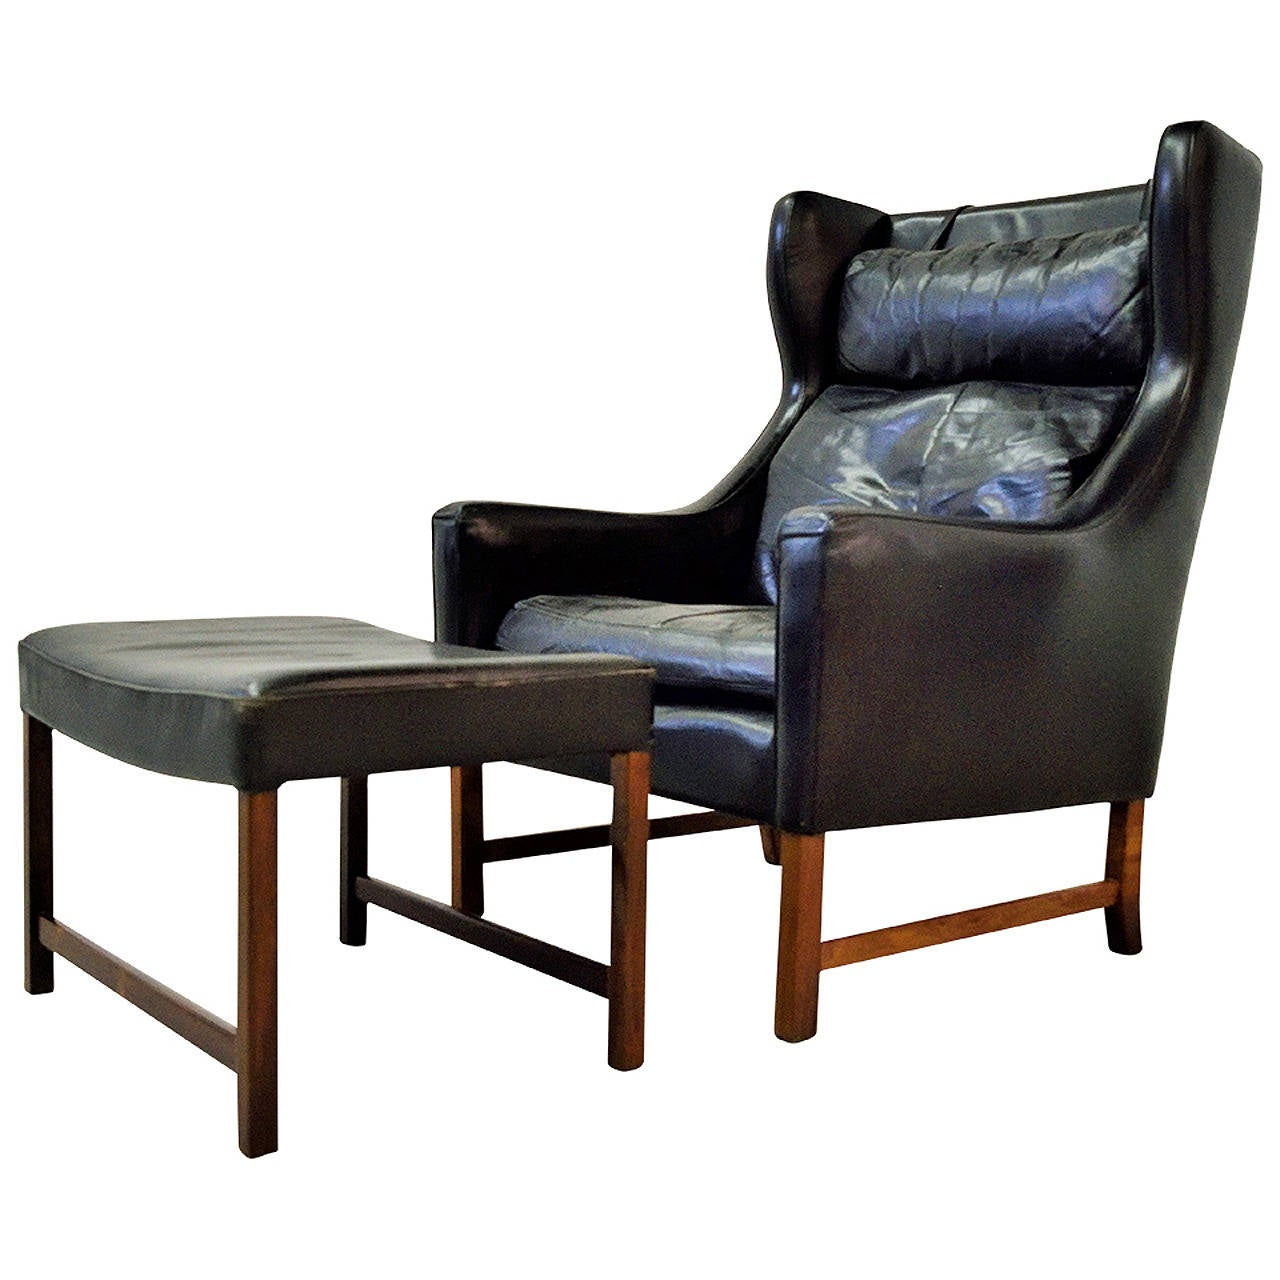 High Back Wing Chair Fredrik Kayser High Back Leather Wing Chair And Ottoman At